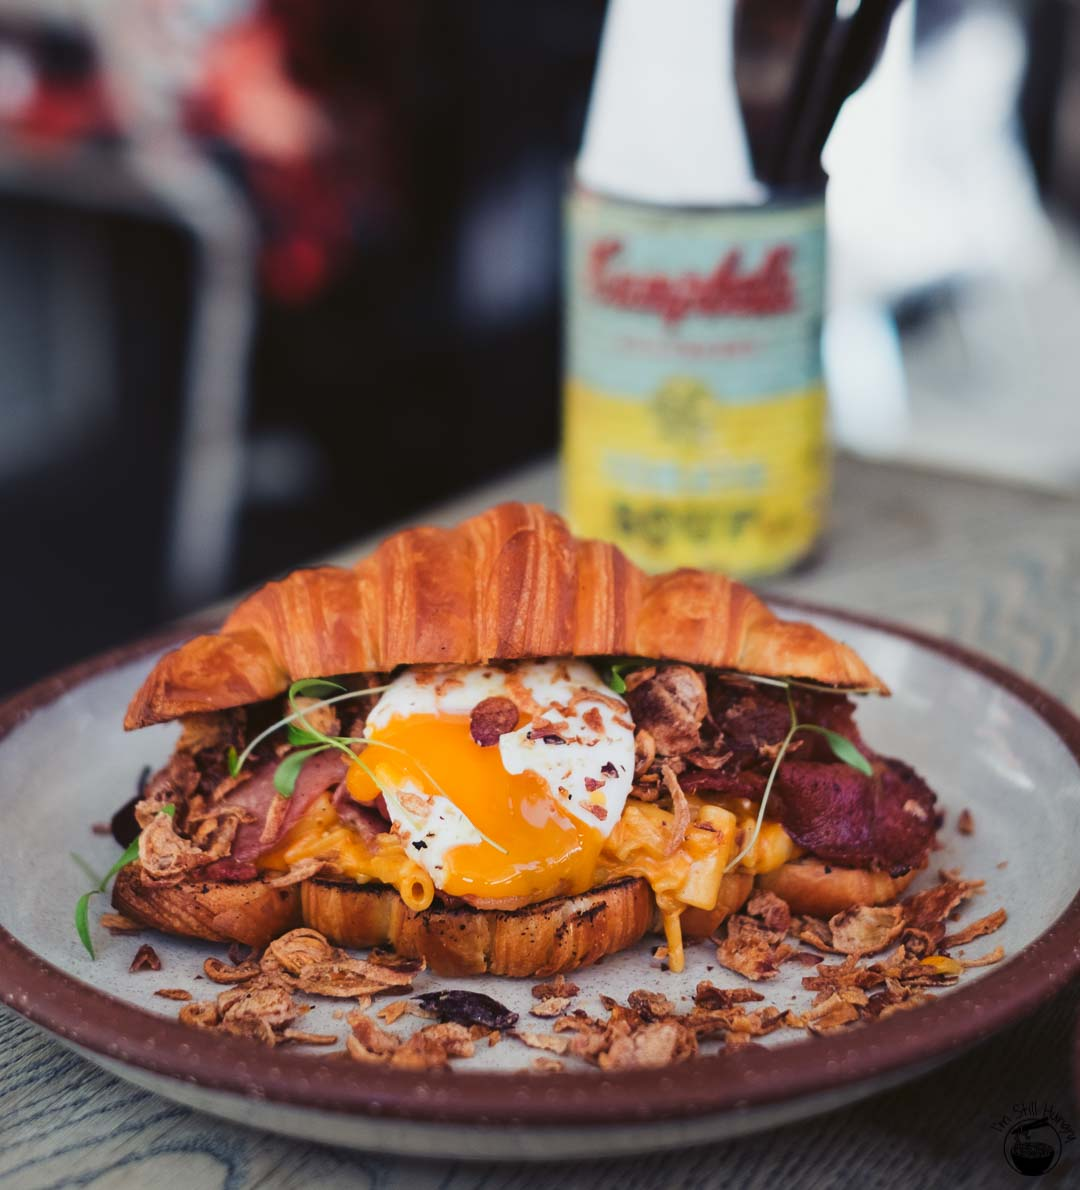 Cuckoo Callay Bacon Festival The Bacon Mac Daddy: double smoked bacon, bacon mac 'n' cheese, 63C egg, tomato relish & fried shallots in a croissant